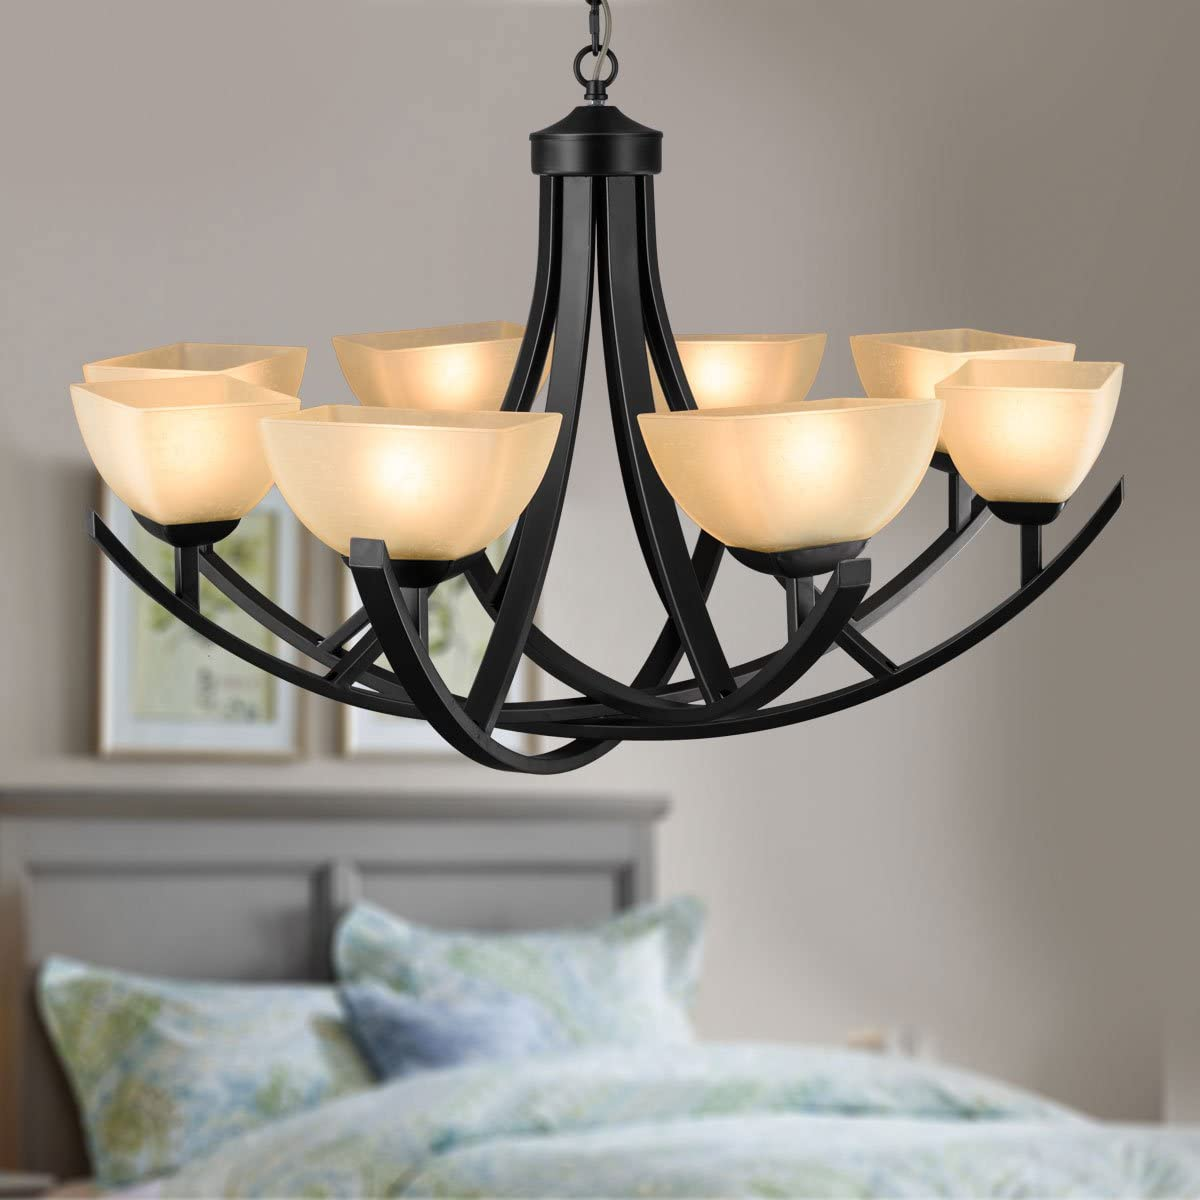 8-Light Black Wrought Iron Chandelier with Glass Shades C-8016-8